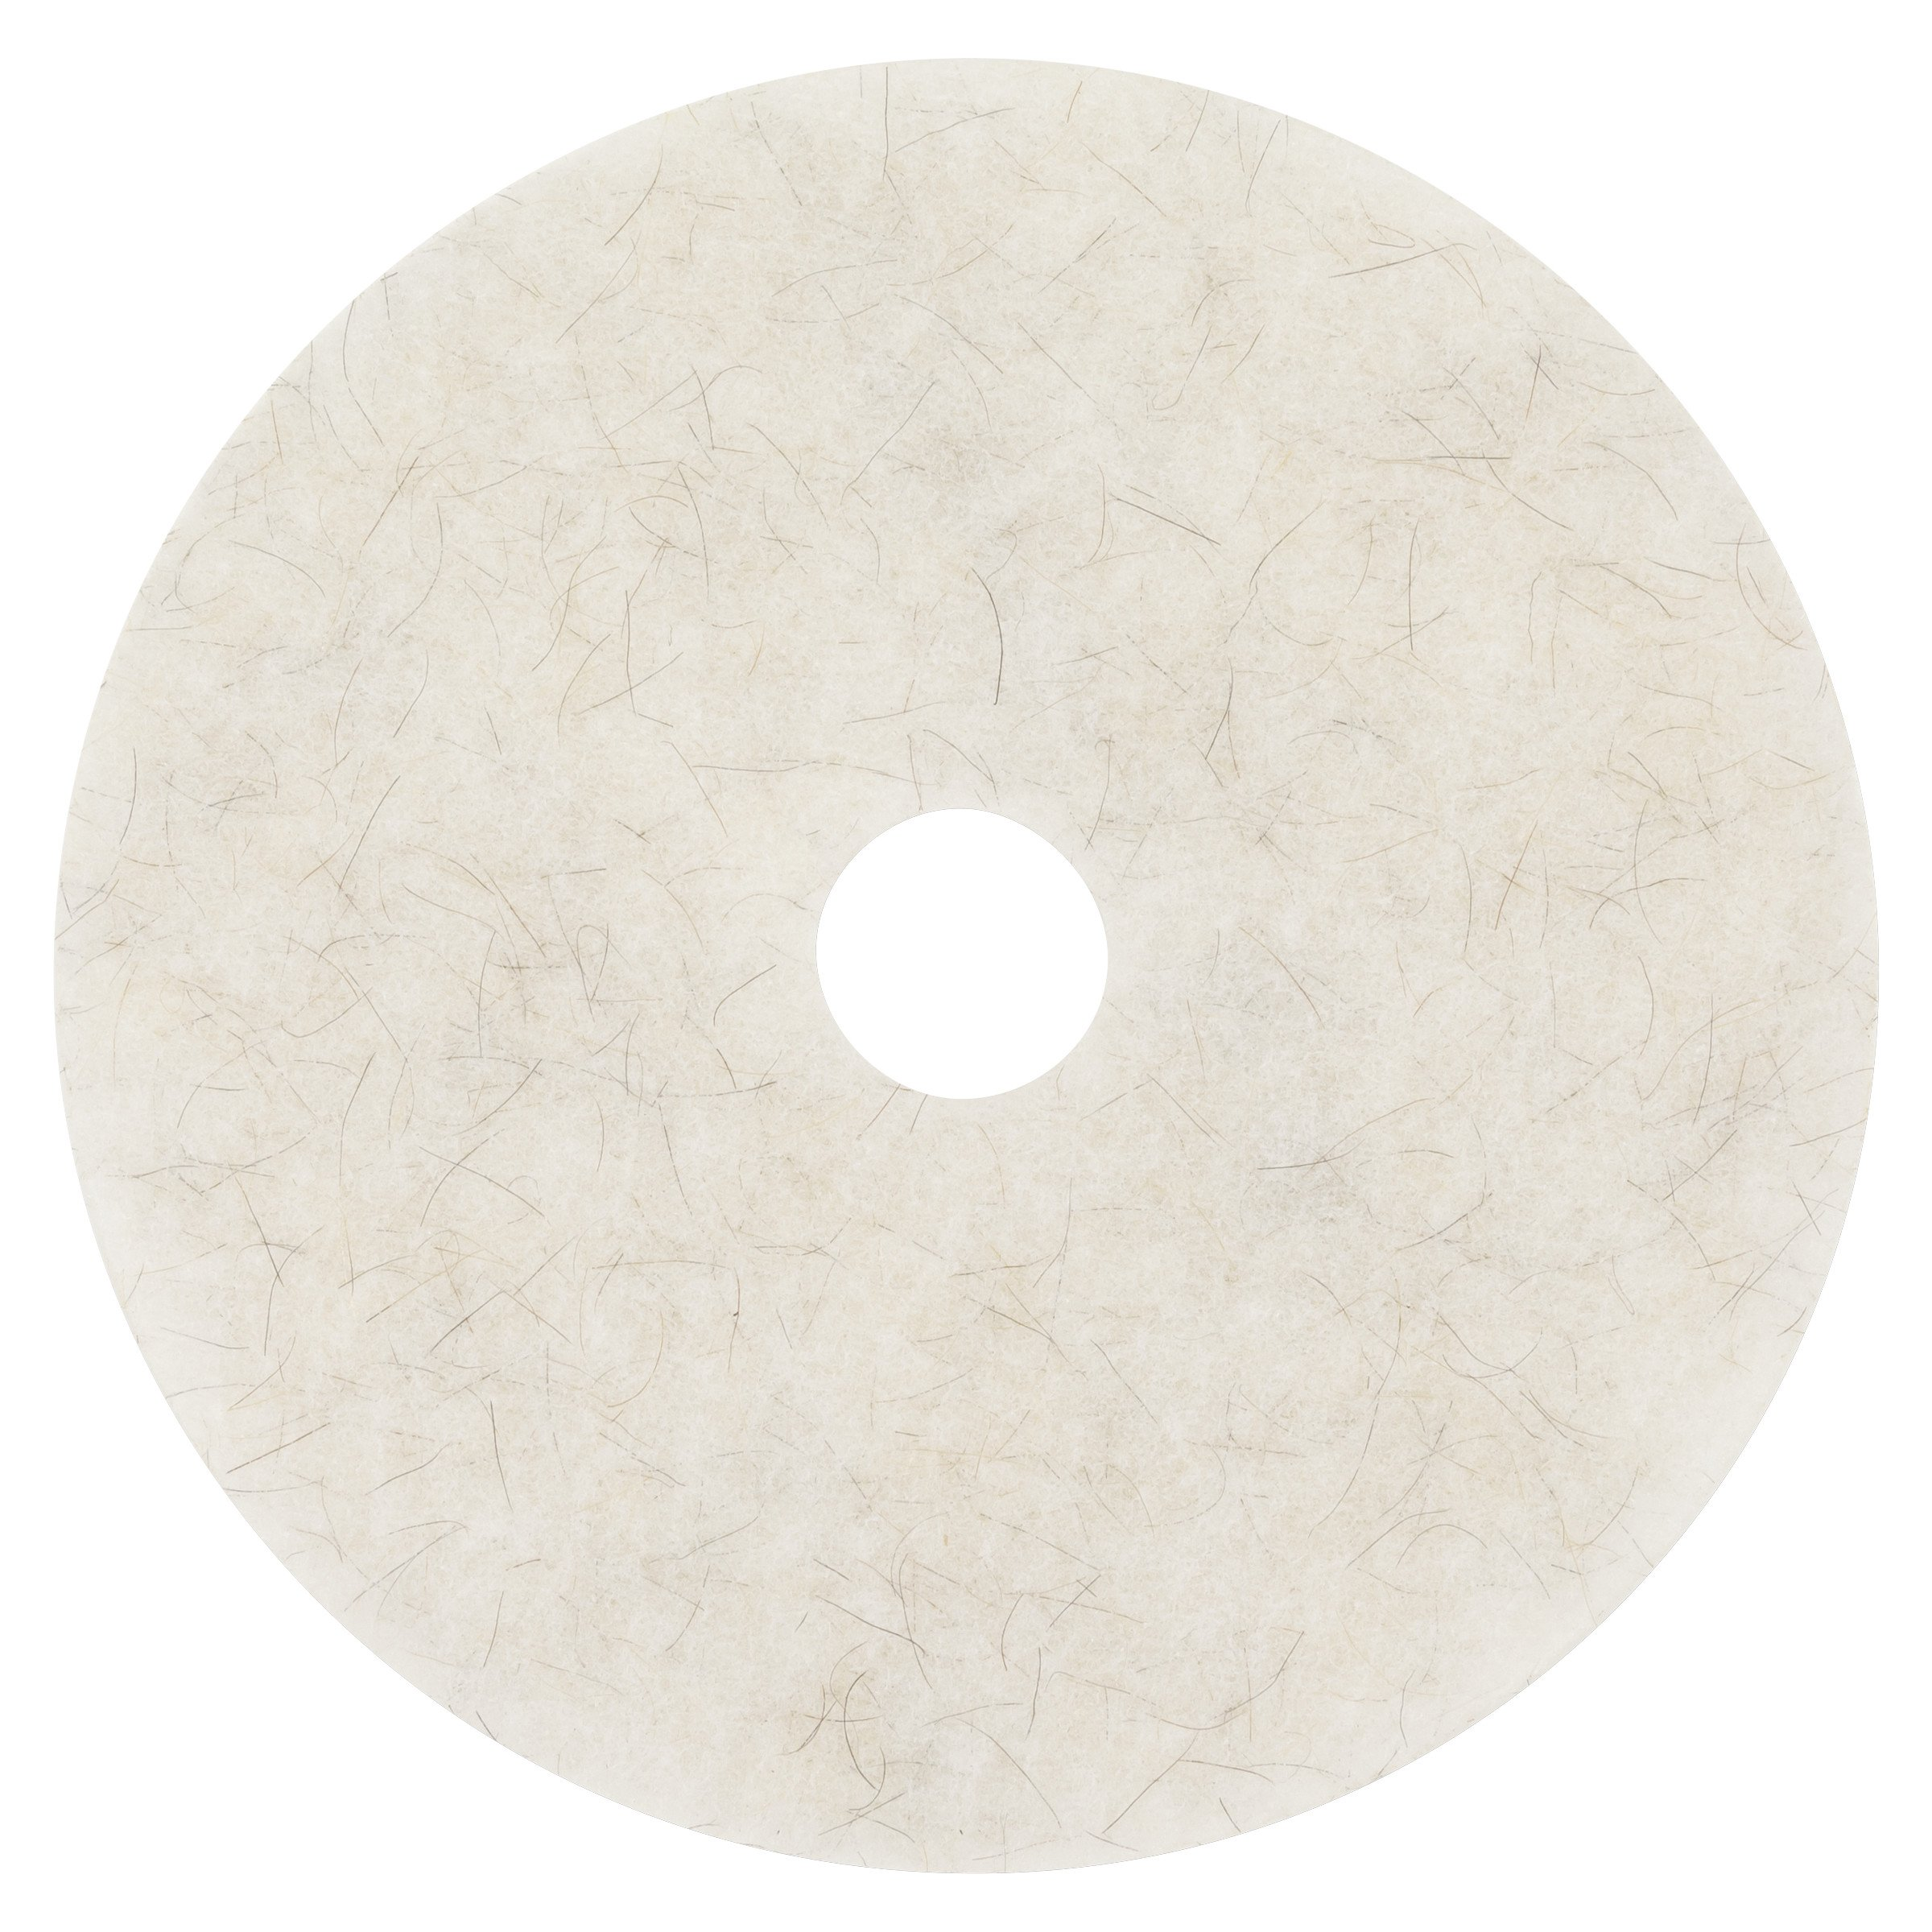 3M Natural Blend White Pad 3300, 20'' (Case of 5) by 3M